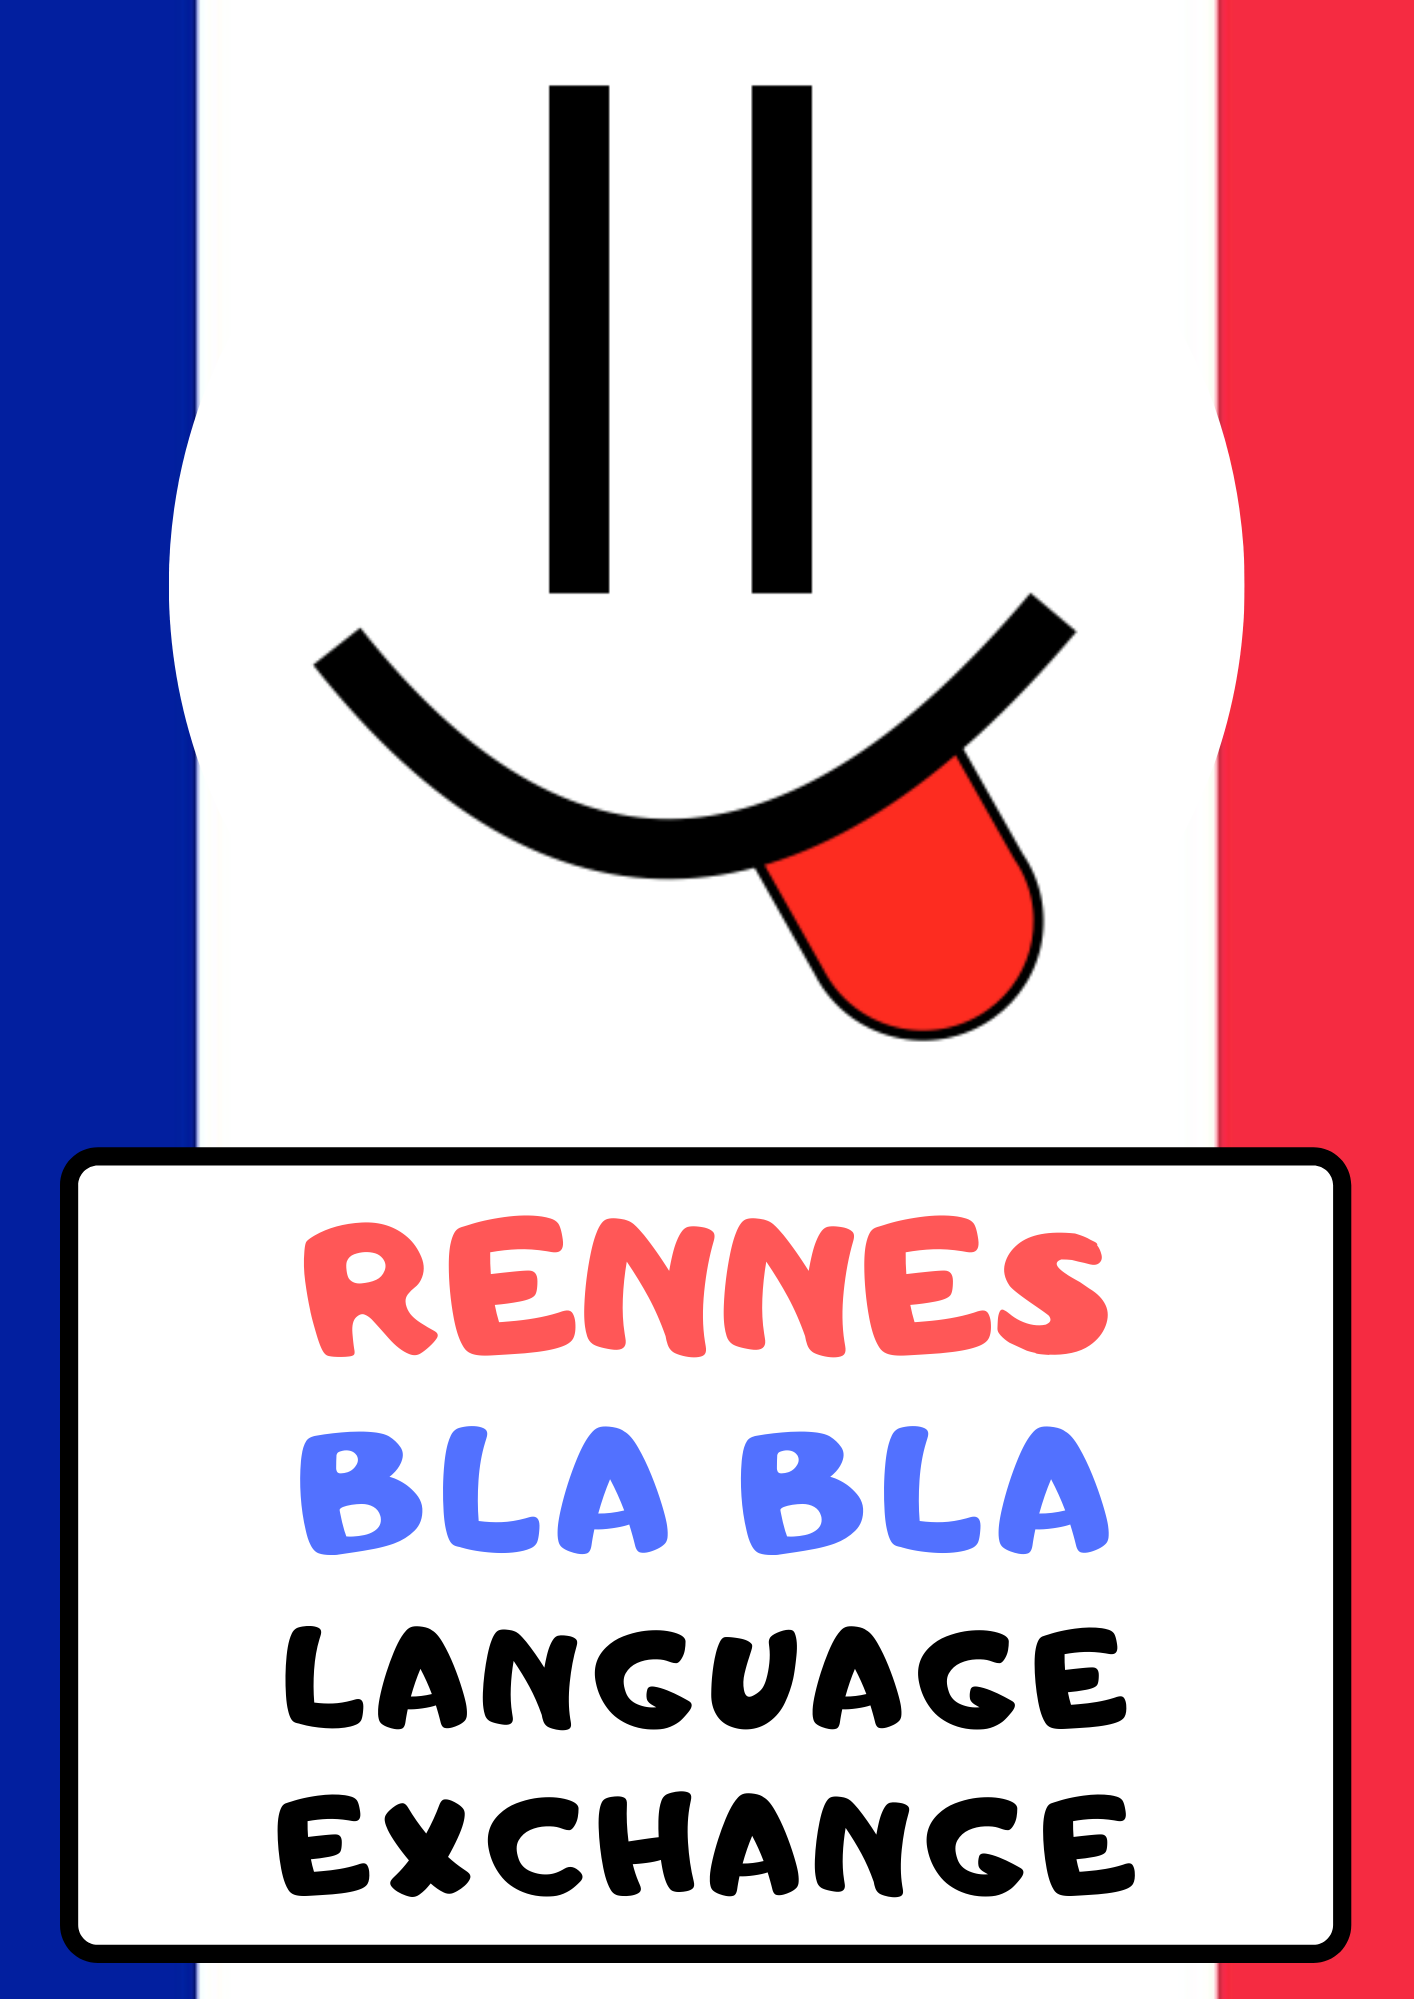 Rennes BlaBla Language Exchange